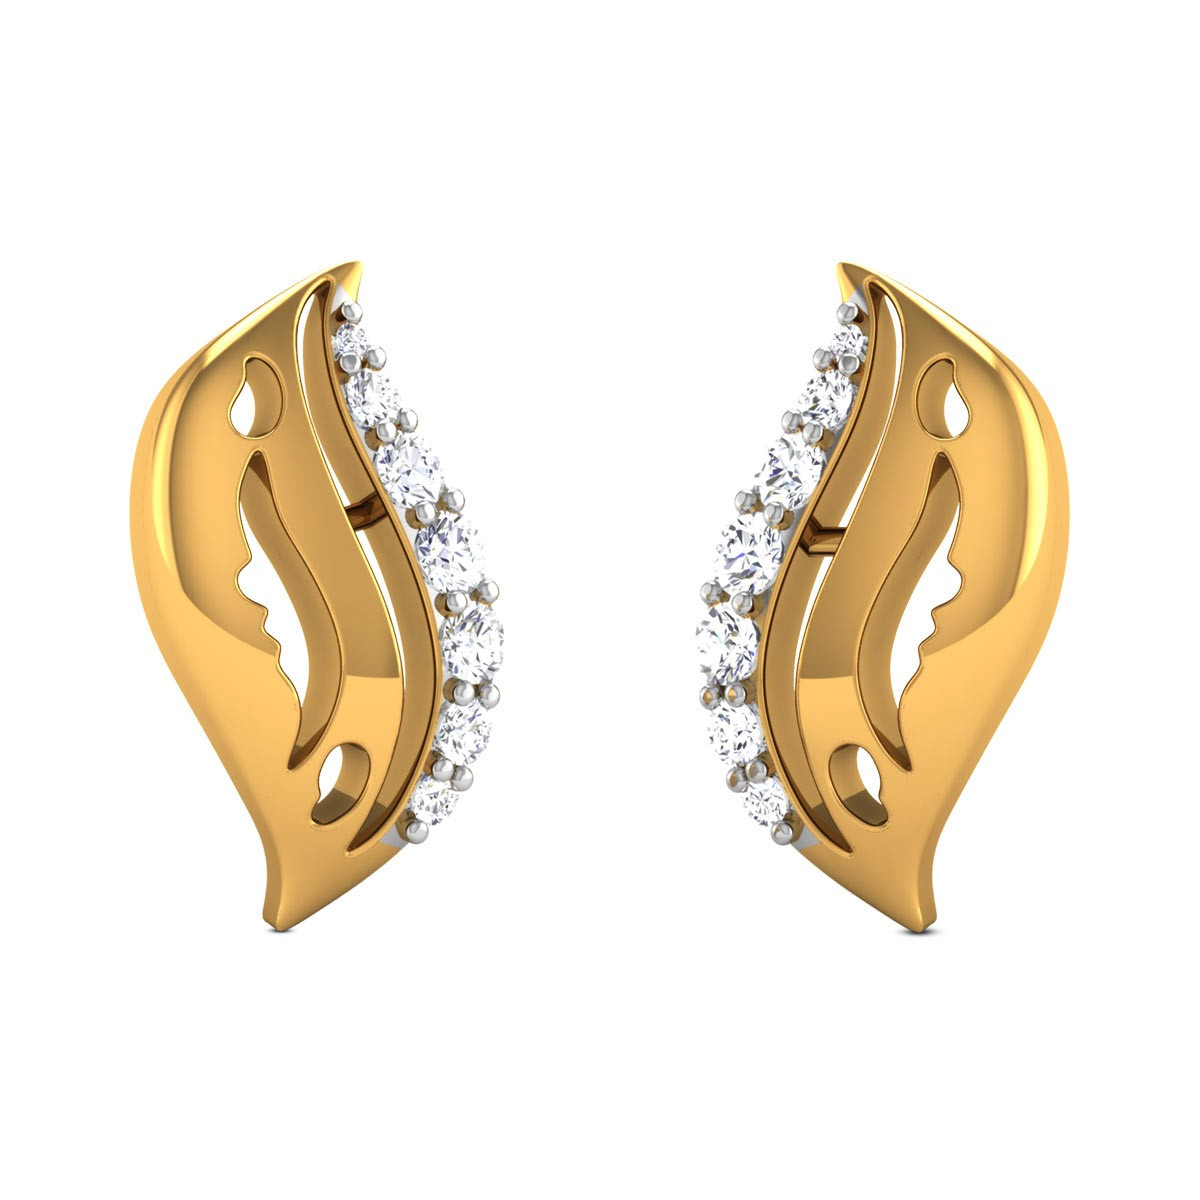 Estaa Diamond Stud Earrings